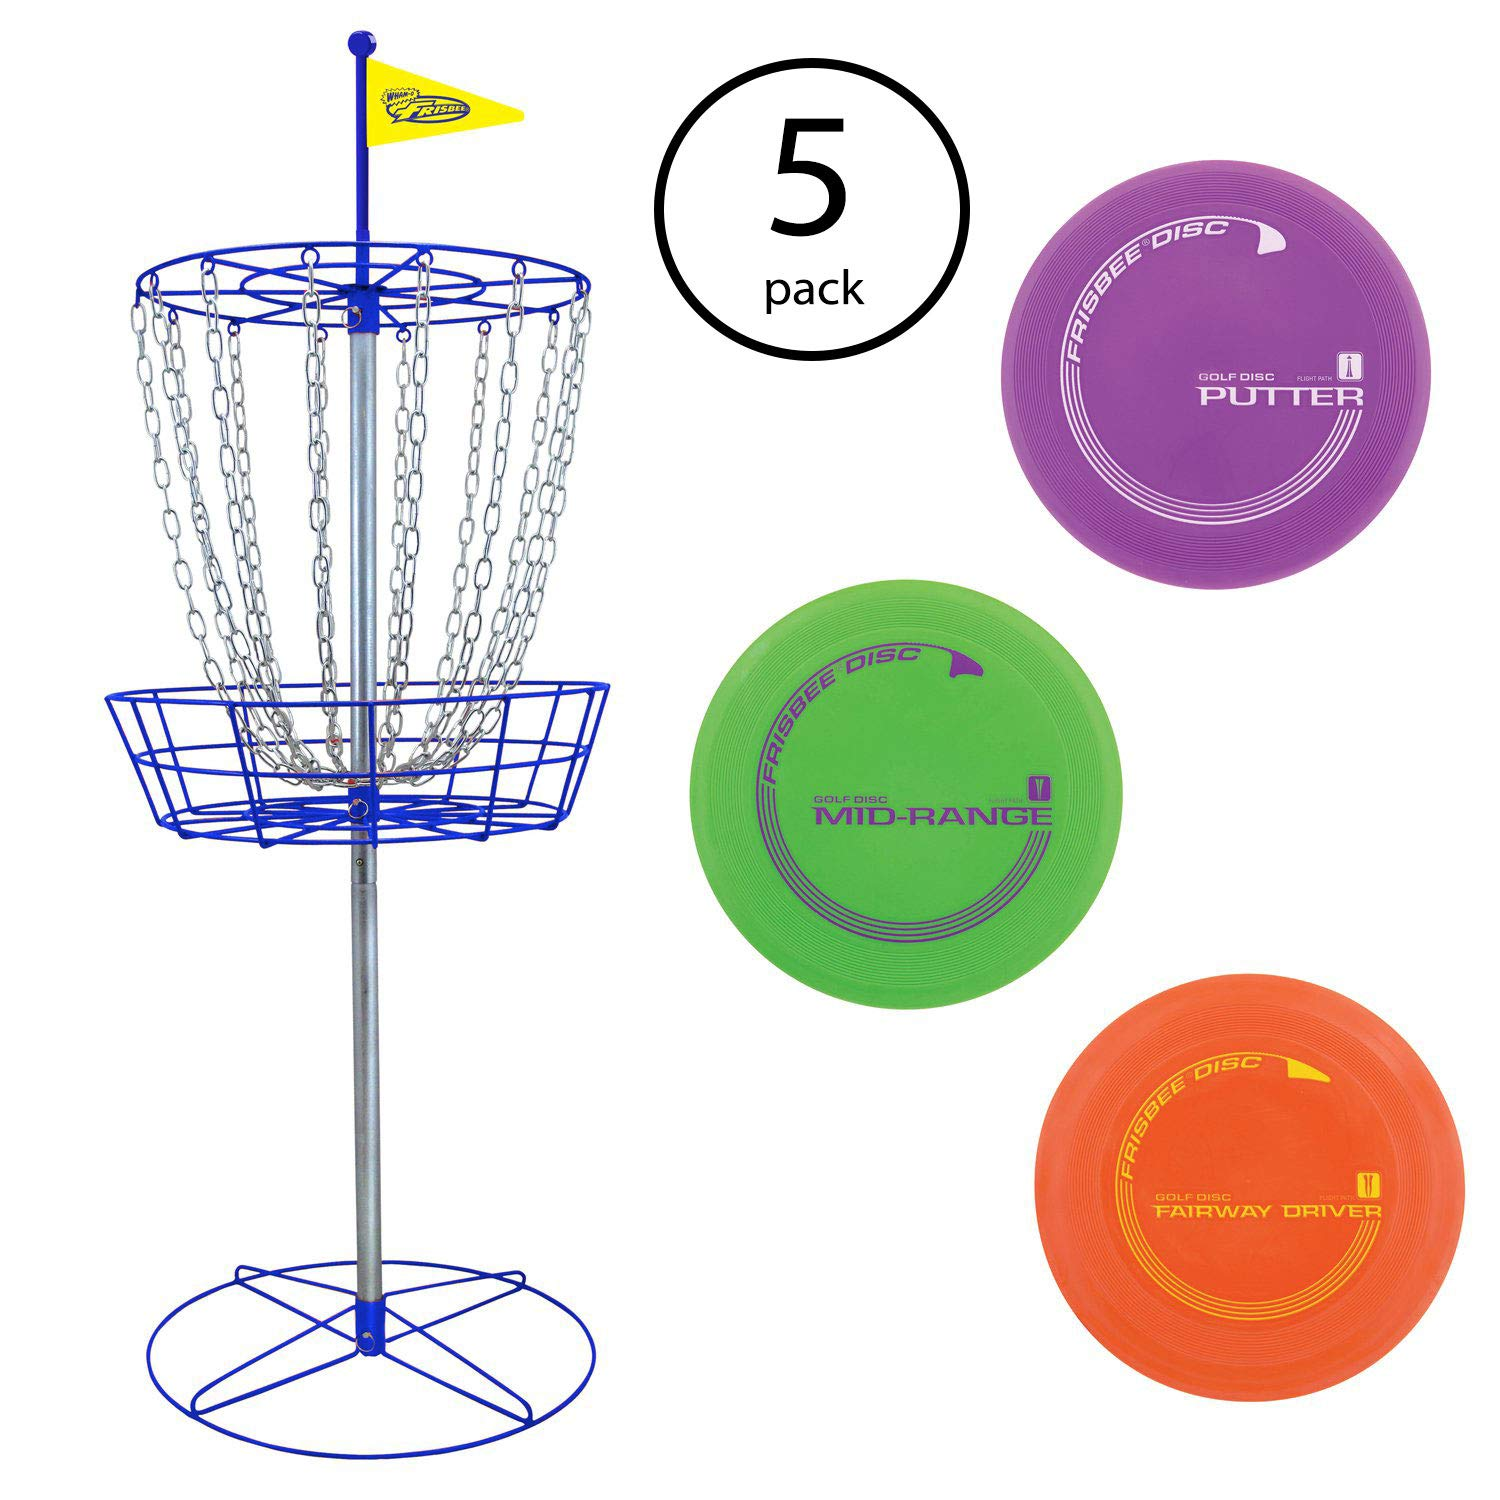 Wham-O Official Frisbee Disc Golf Set with 3 Discs and Blue Target (5 Pack) by Wham-O